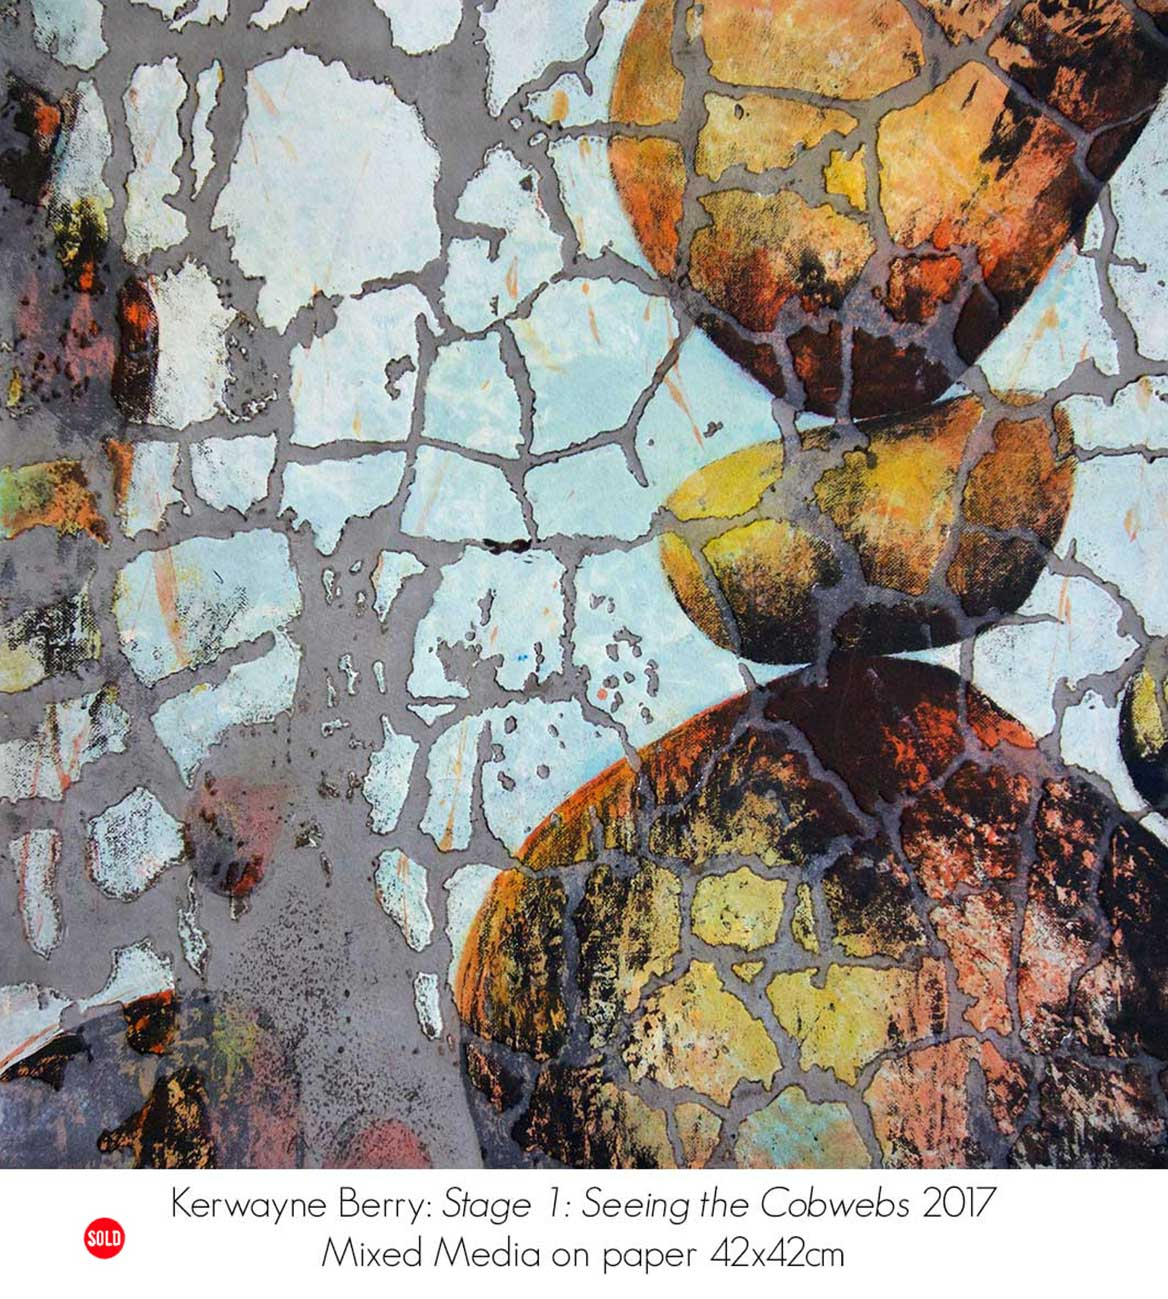 Collector's Choice 2017. Kerwayne Berry at Artsite Galleries 25 November - 17 December 2017.